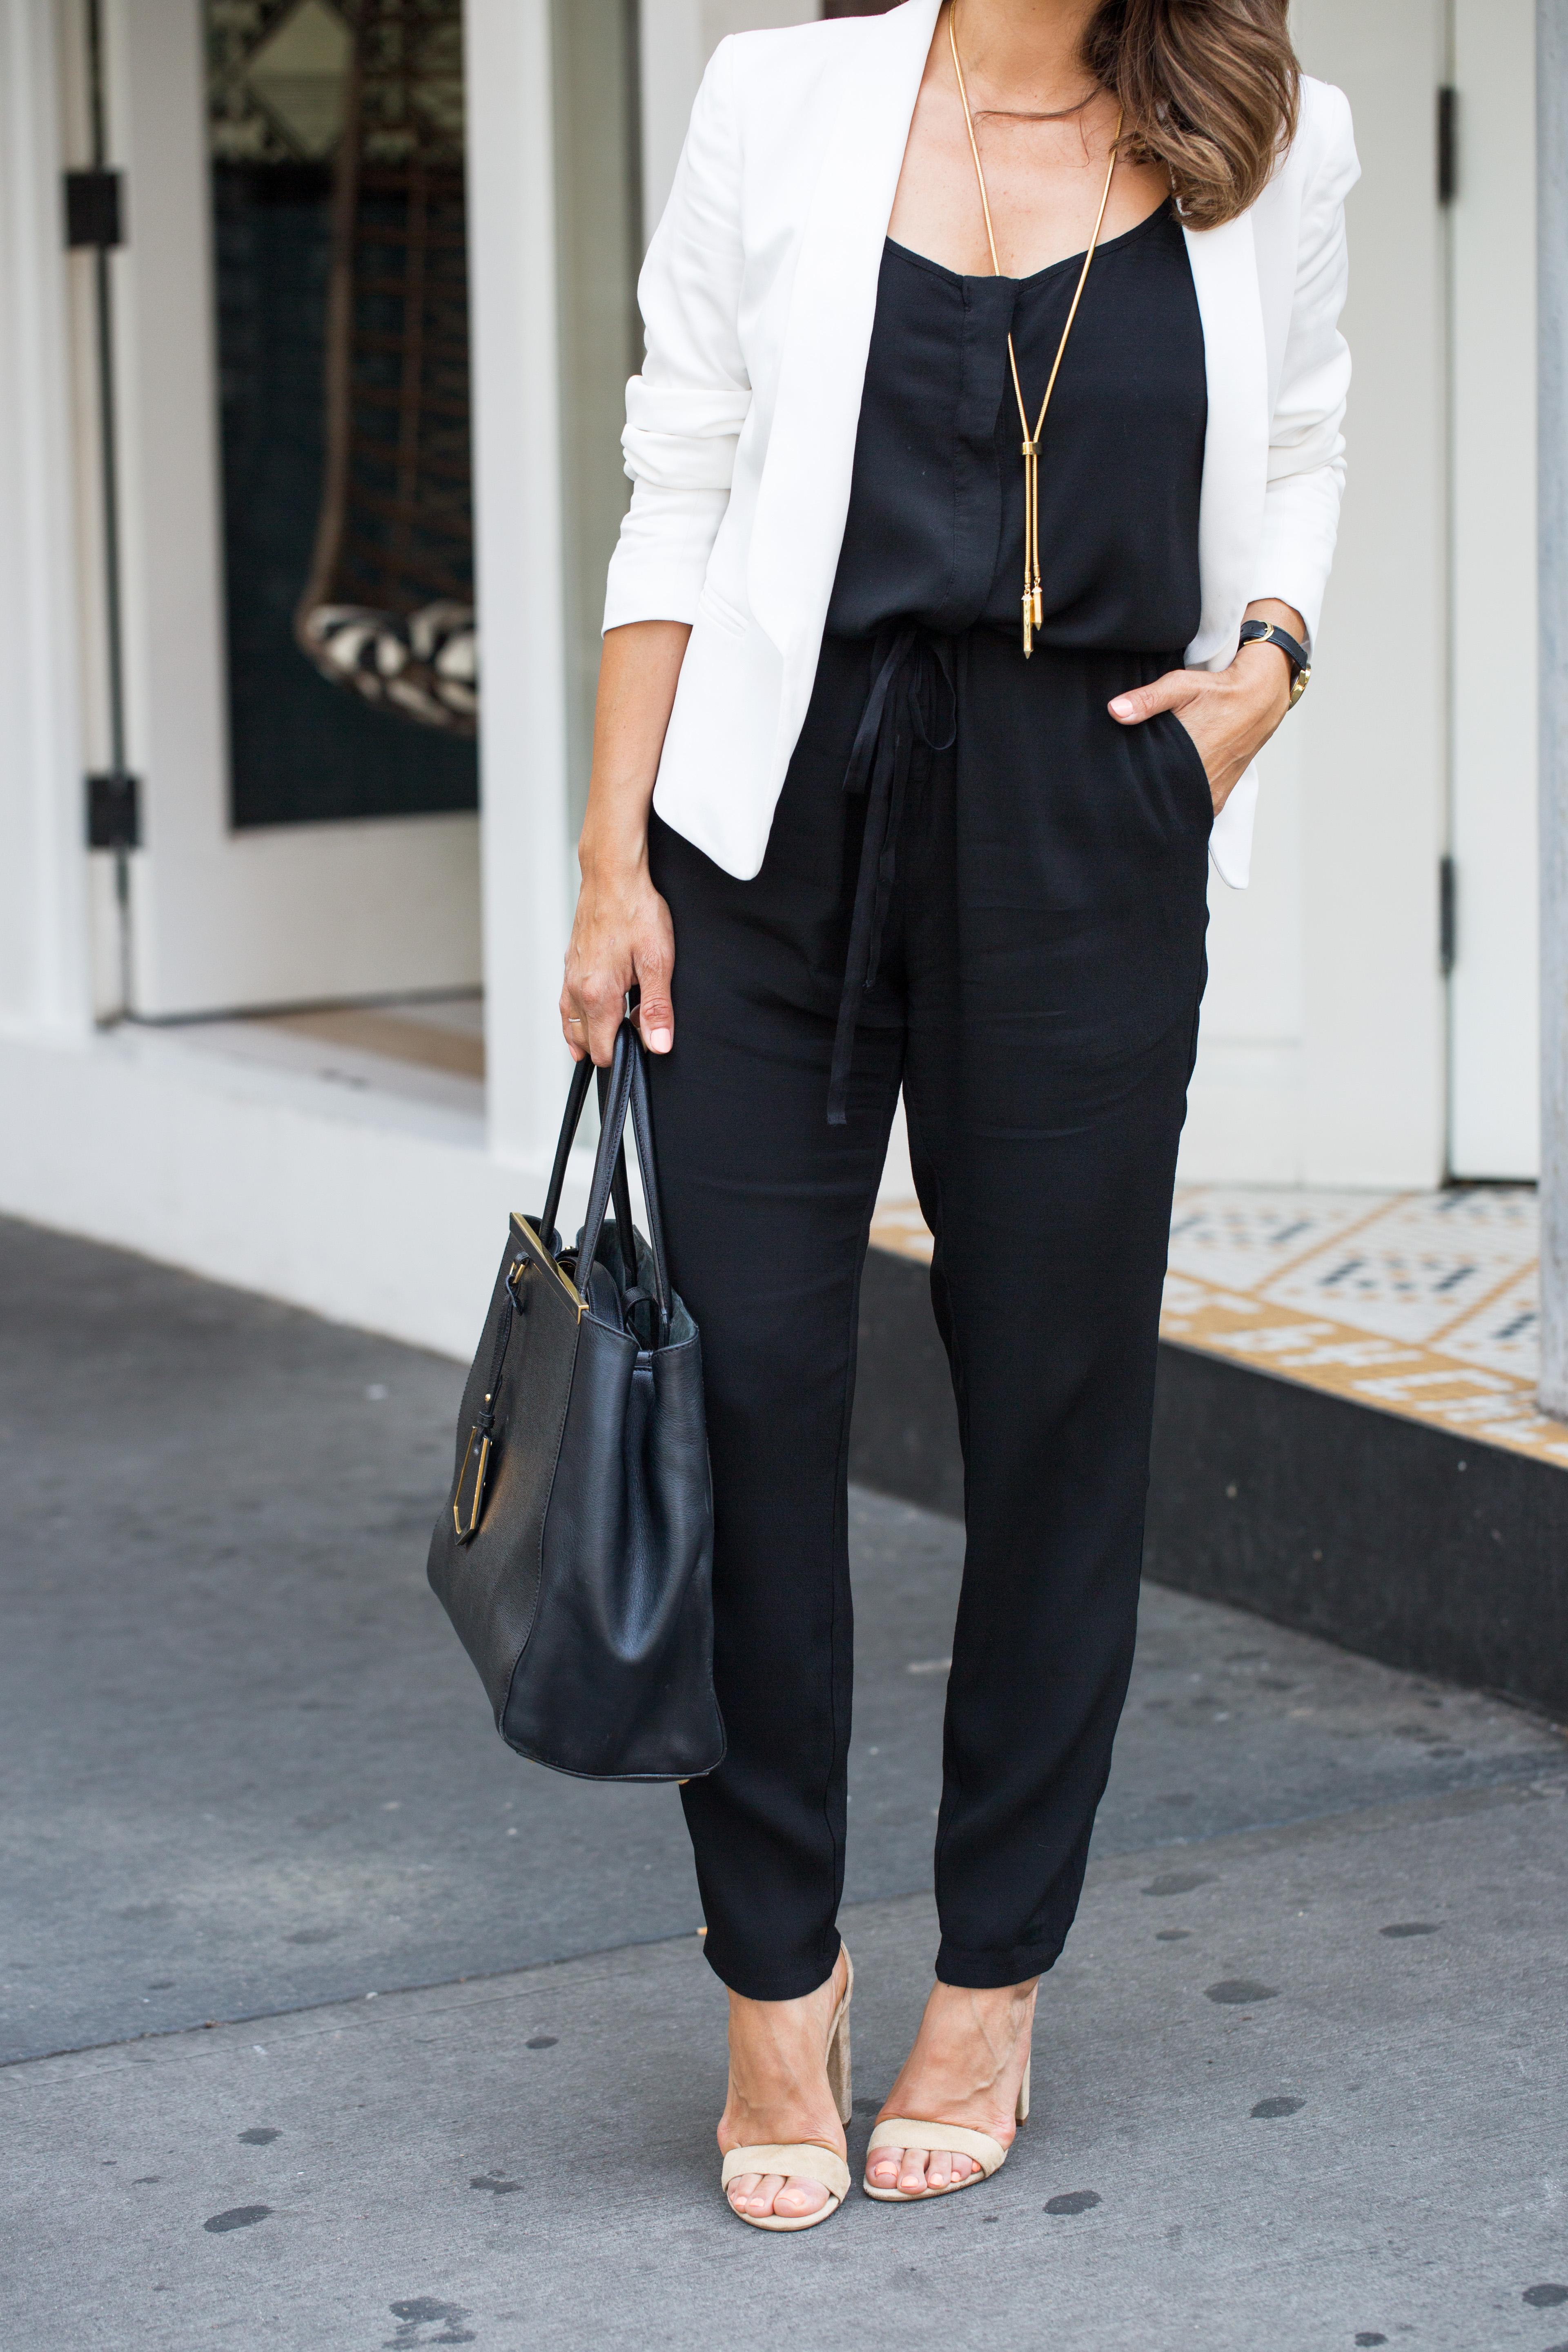 How to style a jumpsuit for work olivia jeanette for What to wear to a wedding besides a dress